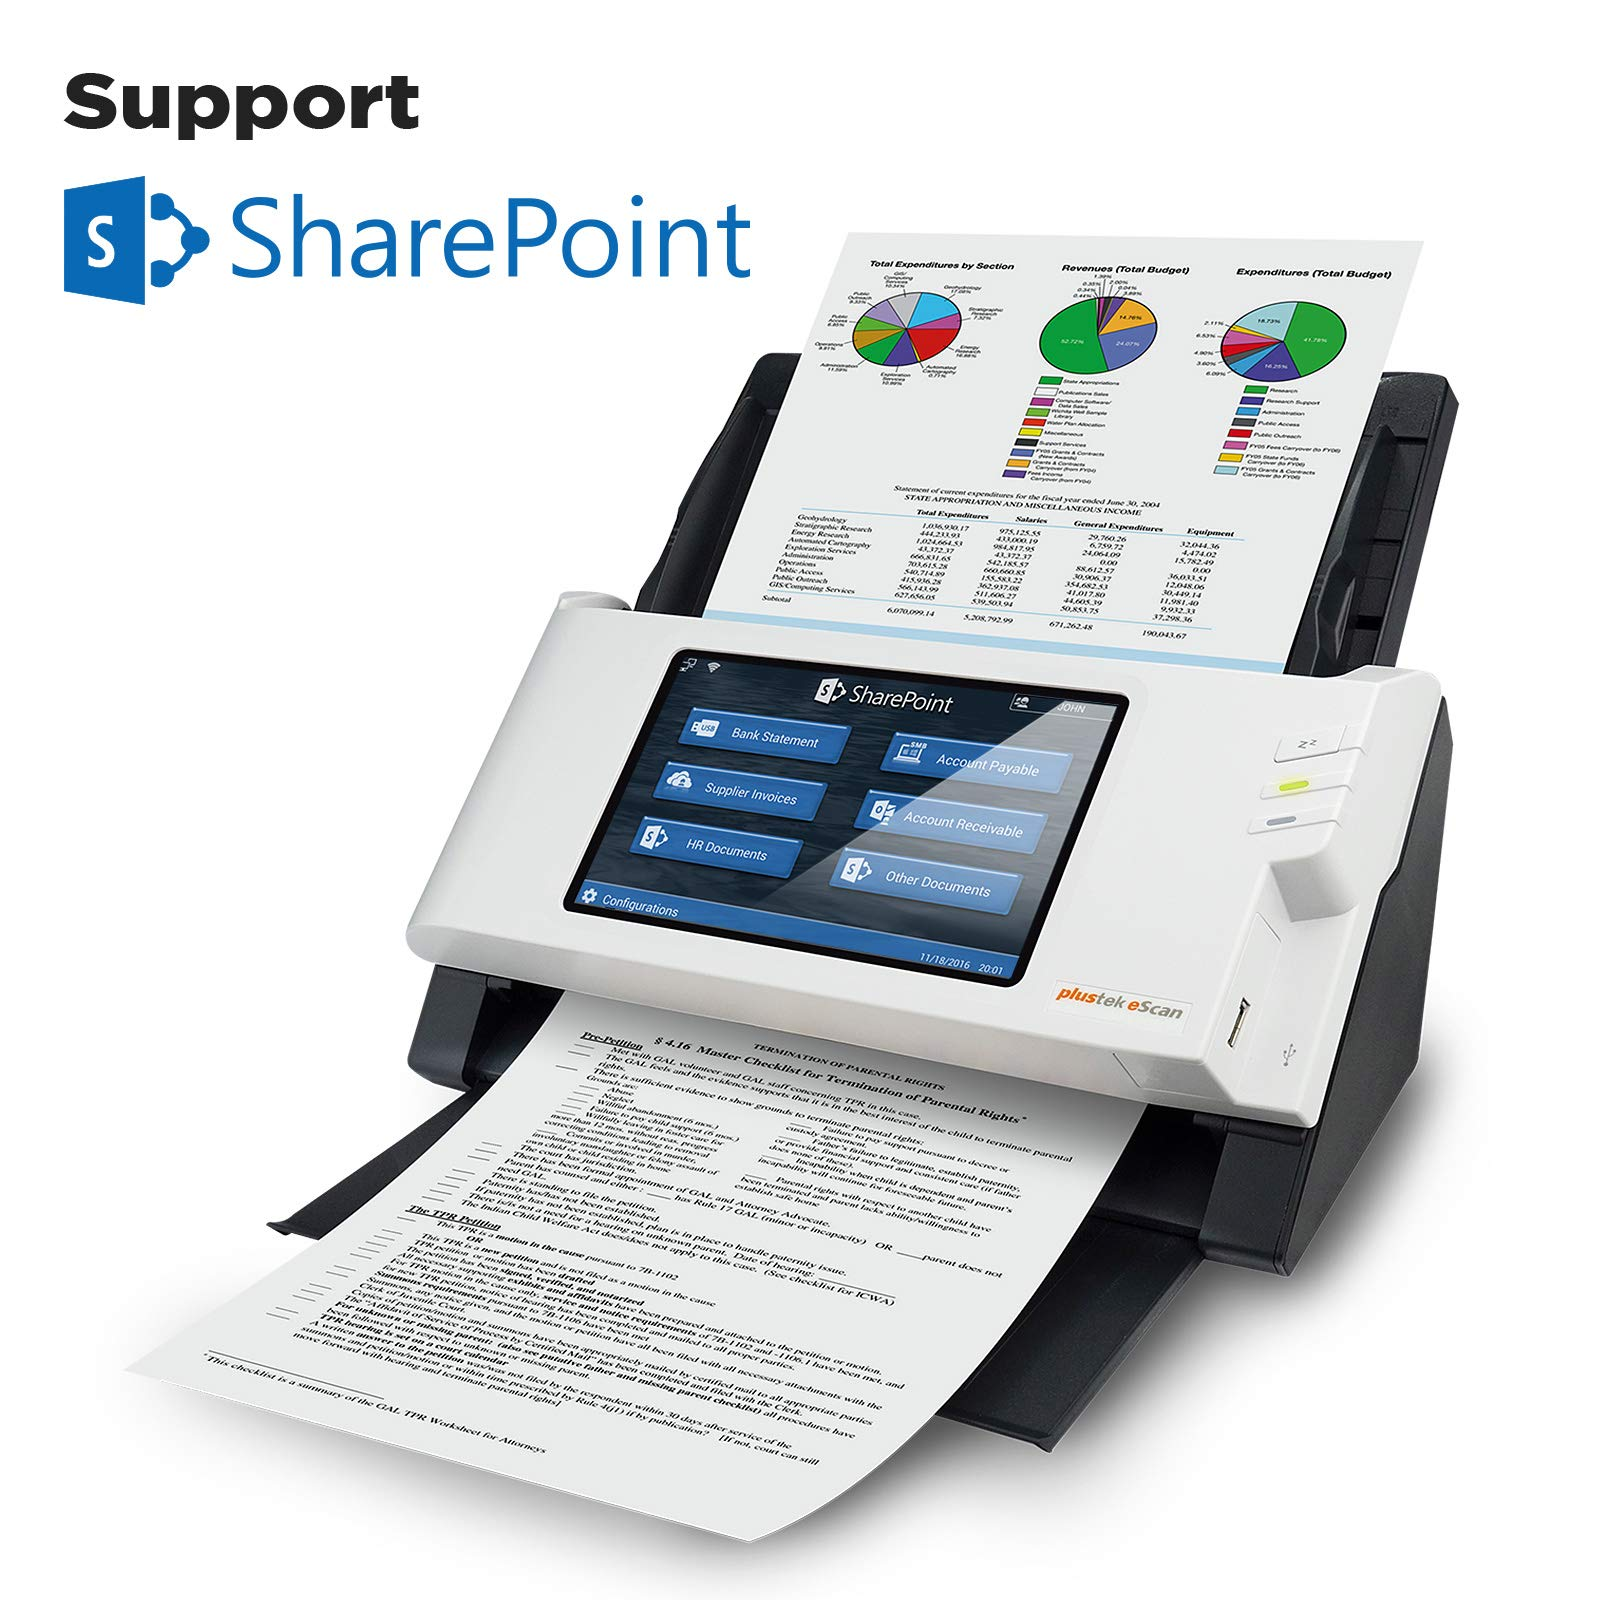 Plustek eScan SharePoint - Network Scanner Dedicated for Microsoft SharePoint and Office 365 - Standalone (PC-Less), 7'' Color Touchscreen - 50-Sheet Automatic Document Feeder by Plustek